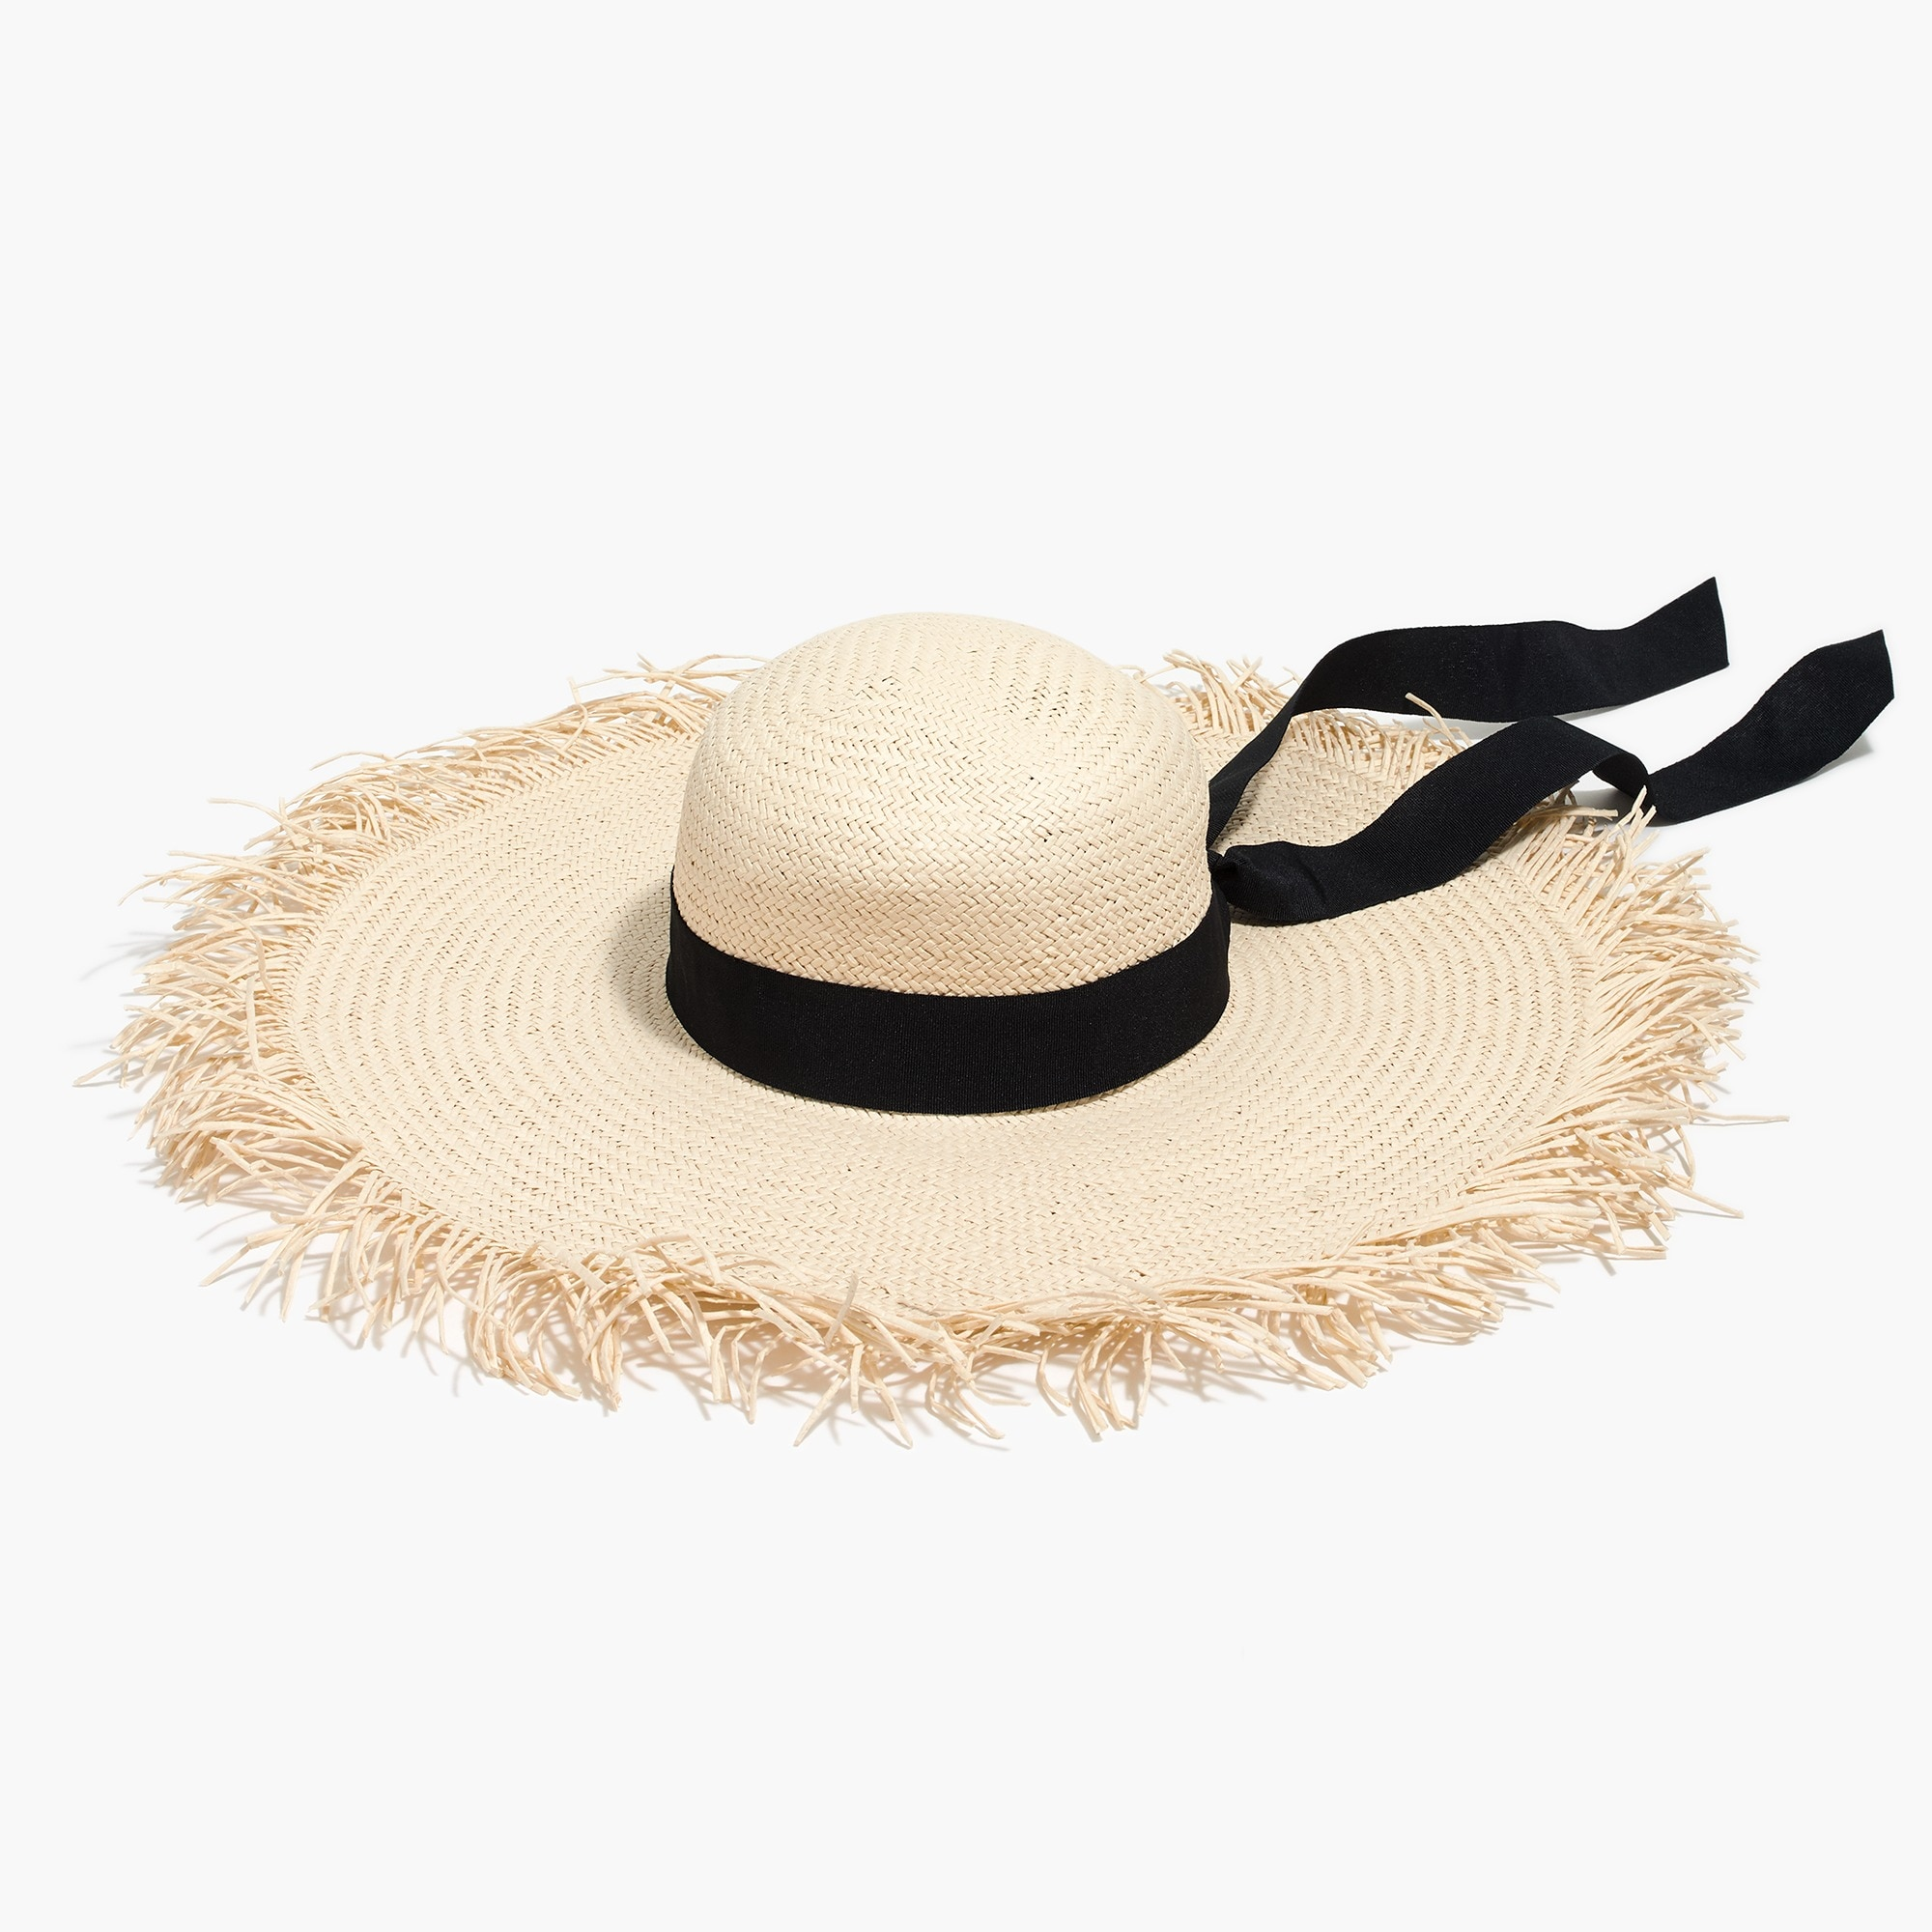 Image 1 for Raw-edge straw hat